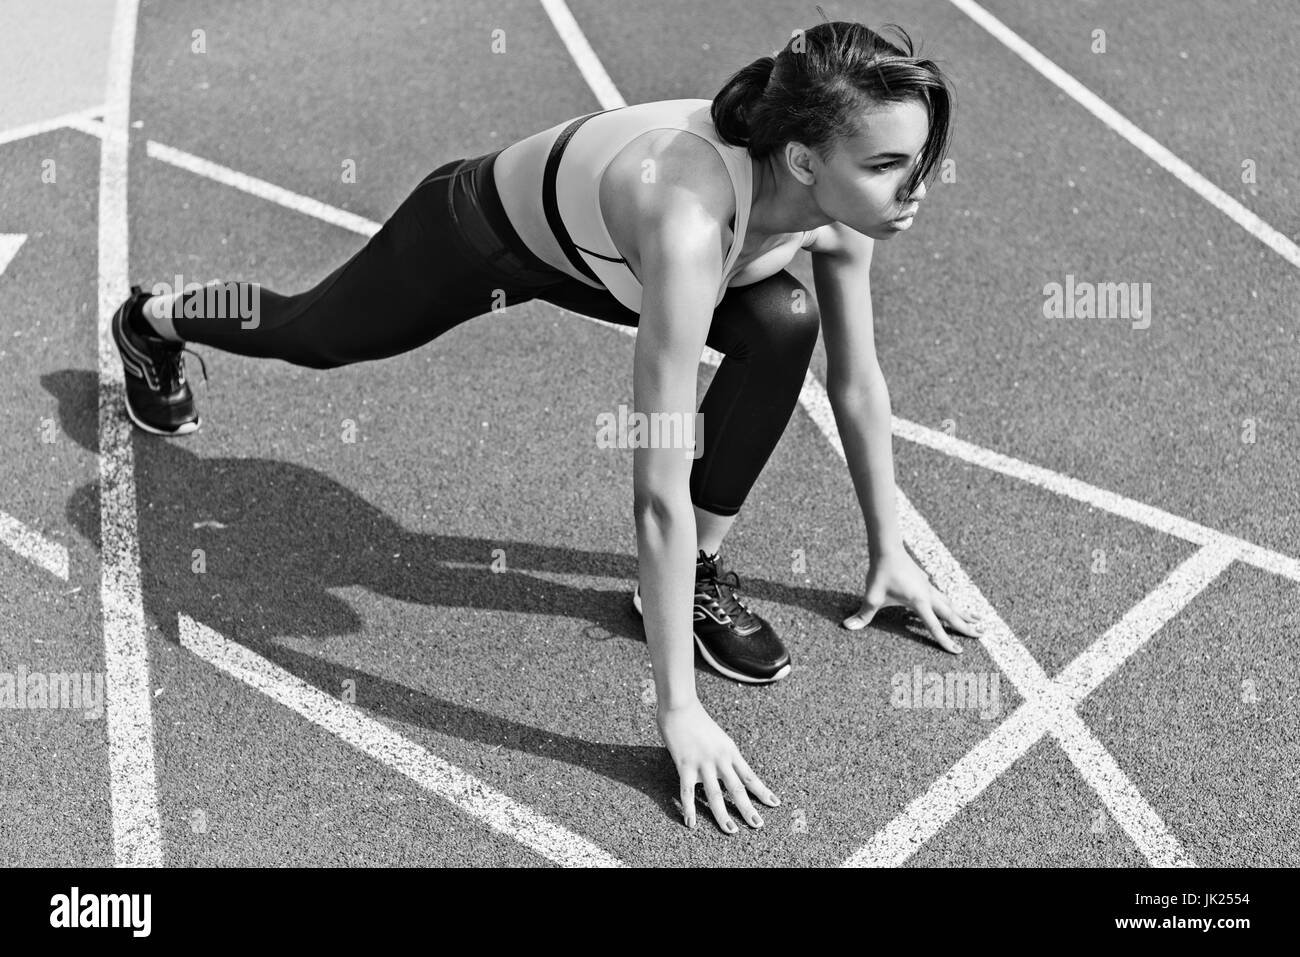 Concentrated athletic young runner on starting line at running track stadium, black and white photo - Stock Image